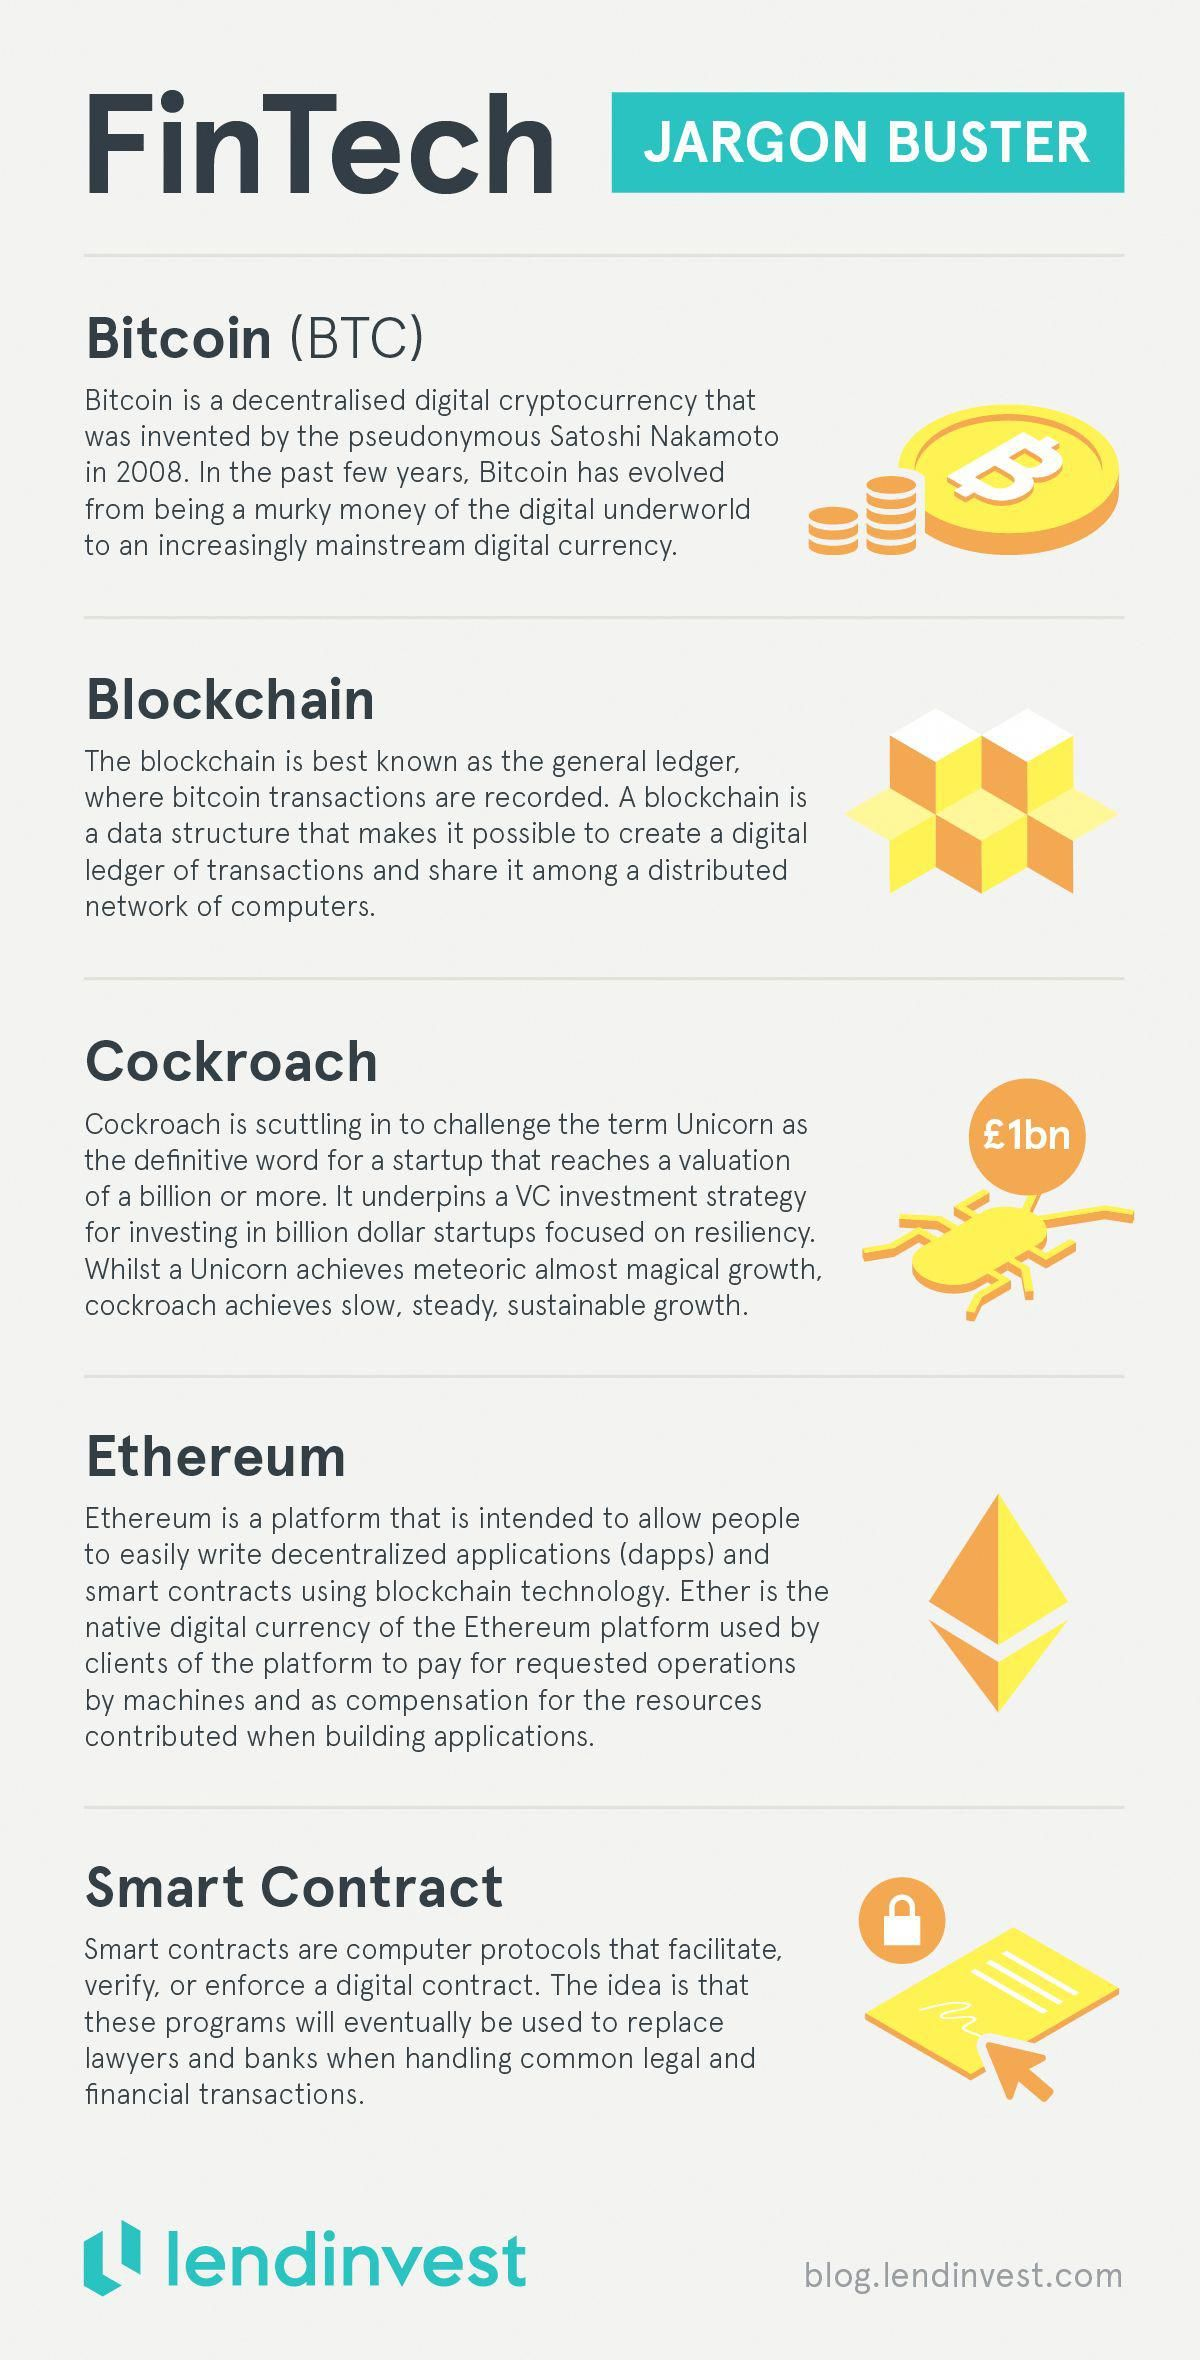 Ethereum Infographic Fintech Jargon Buster The Innovation Shaping The Future Of Finance Internationaltrading Fintech Cryptocurrency Buy Bitcoin